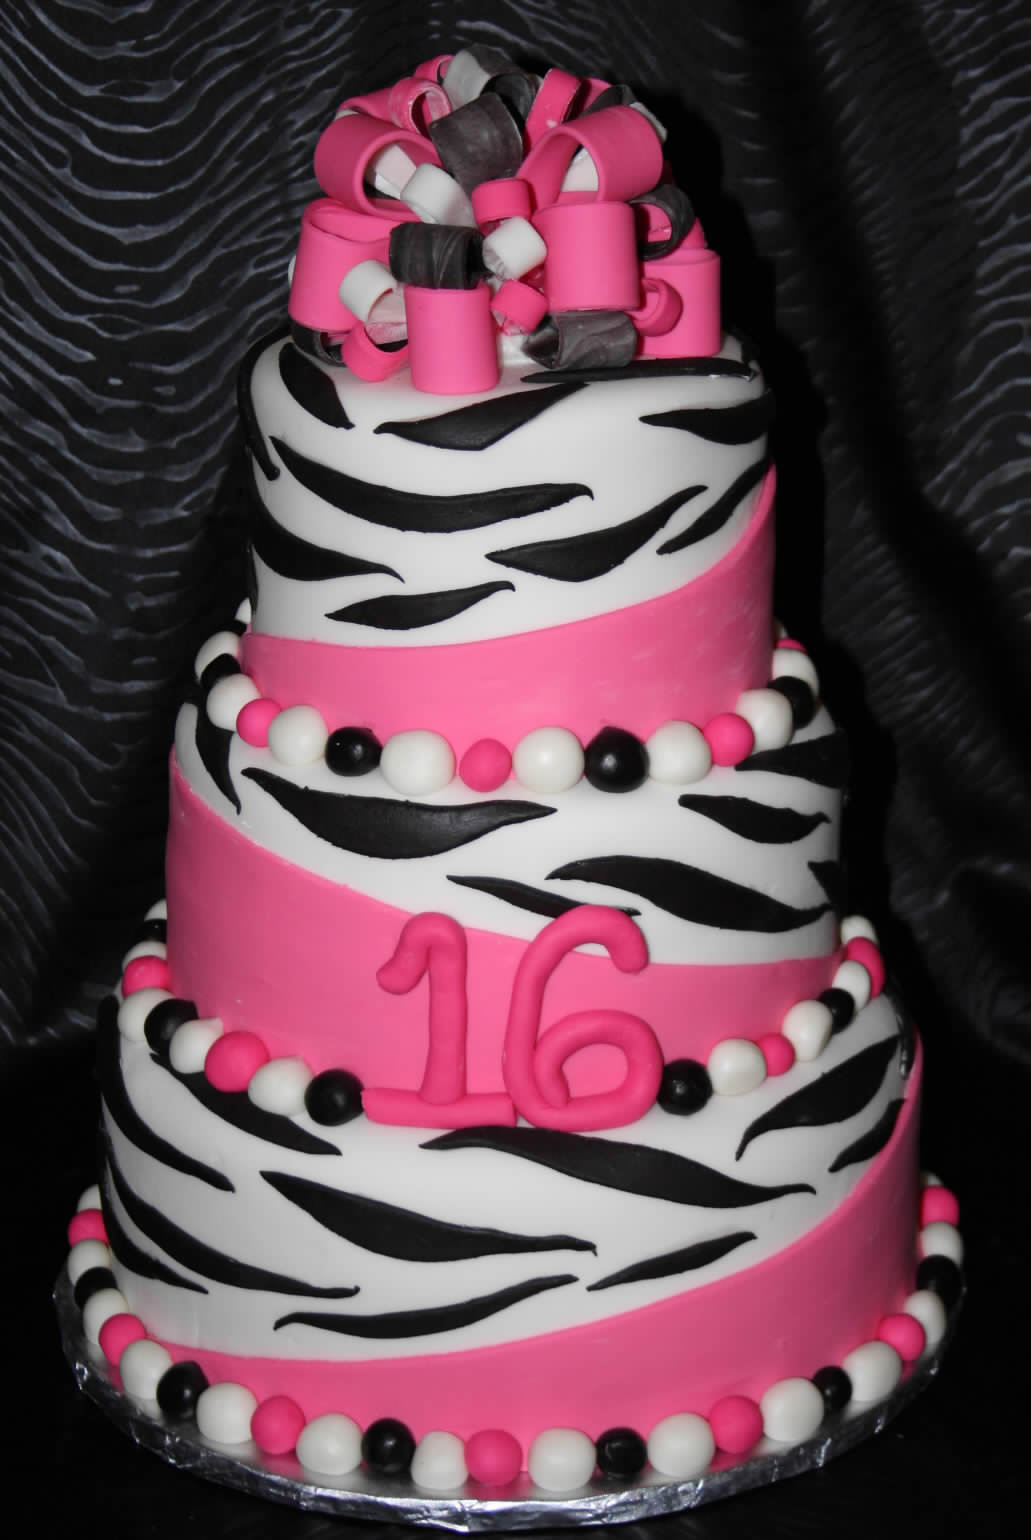 Cake With Zebra Design : Zebra Cakes   Decoration Ideas Little Birthday Cakes